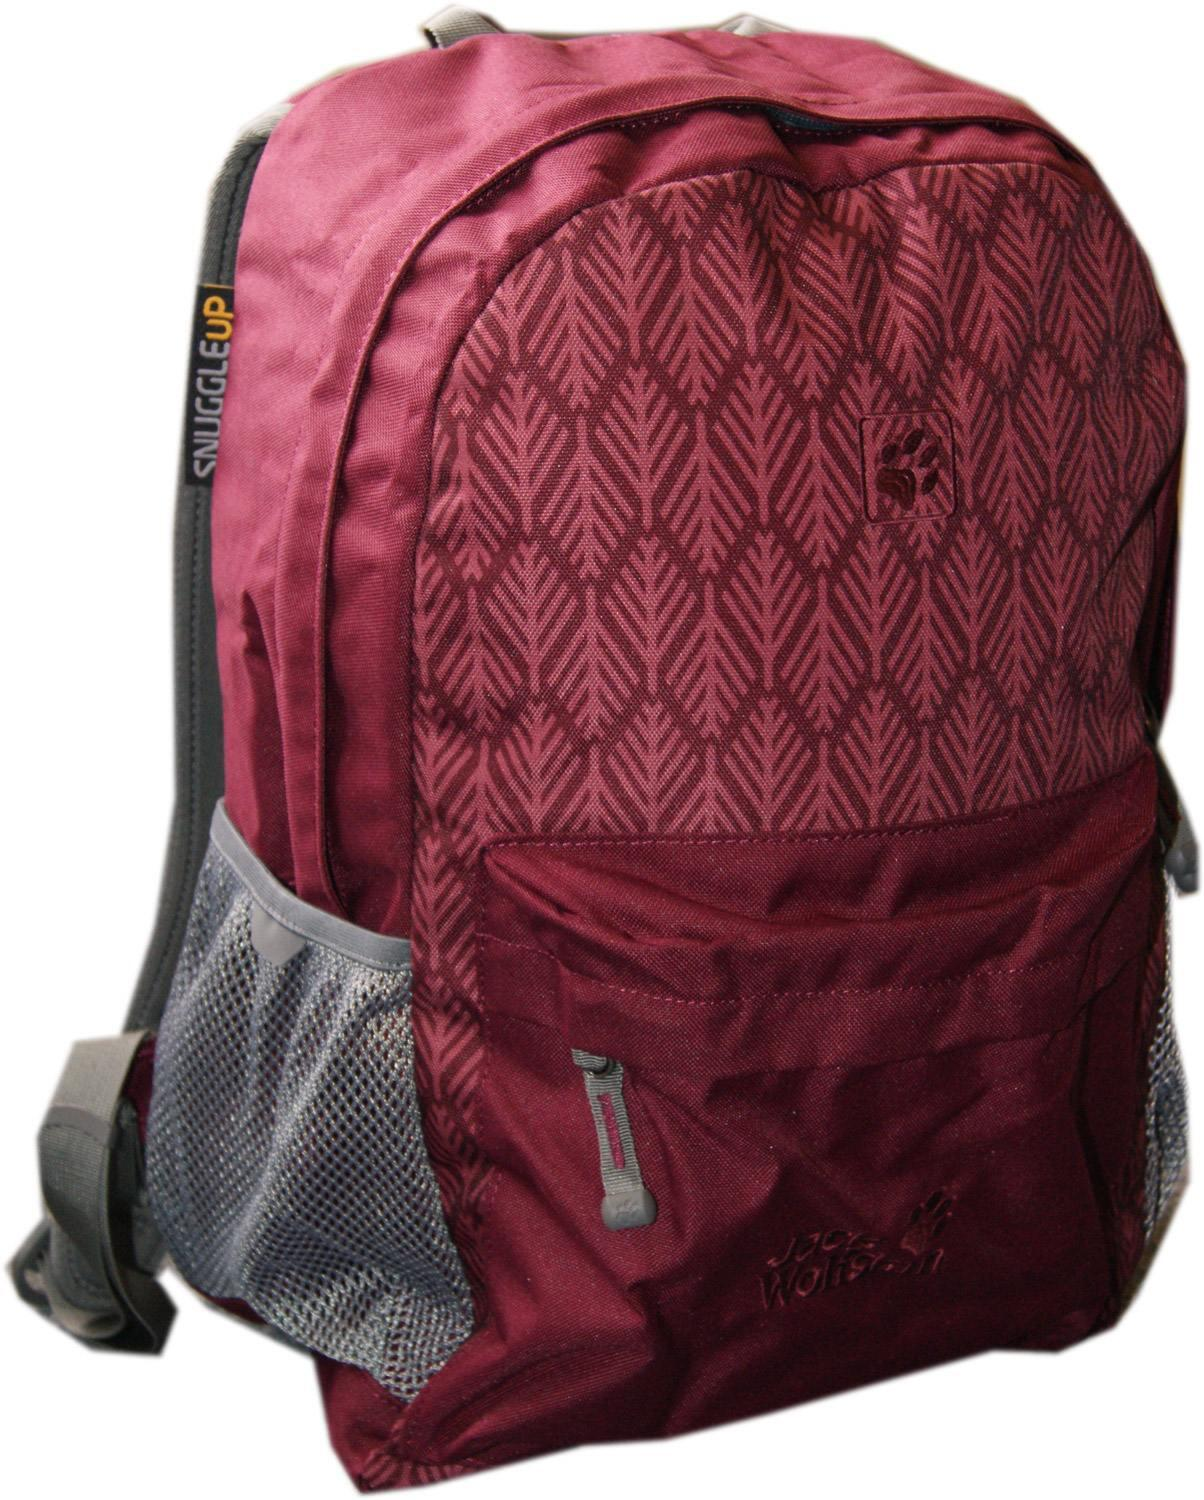 jack-wolfskin-ohio-xt-laptoprucksack-farbe-7943-garnet-red-geometric-leaves-